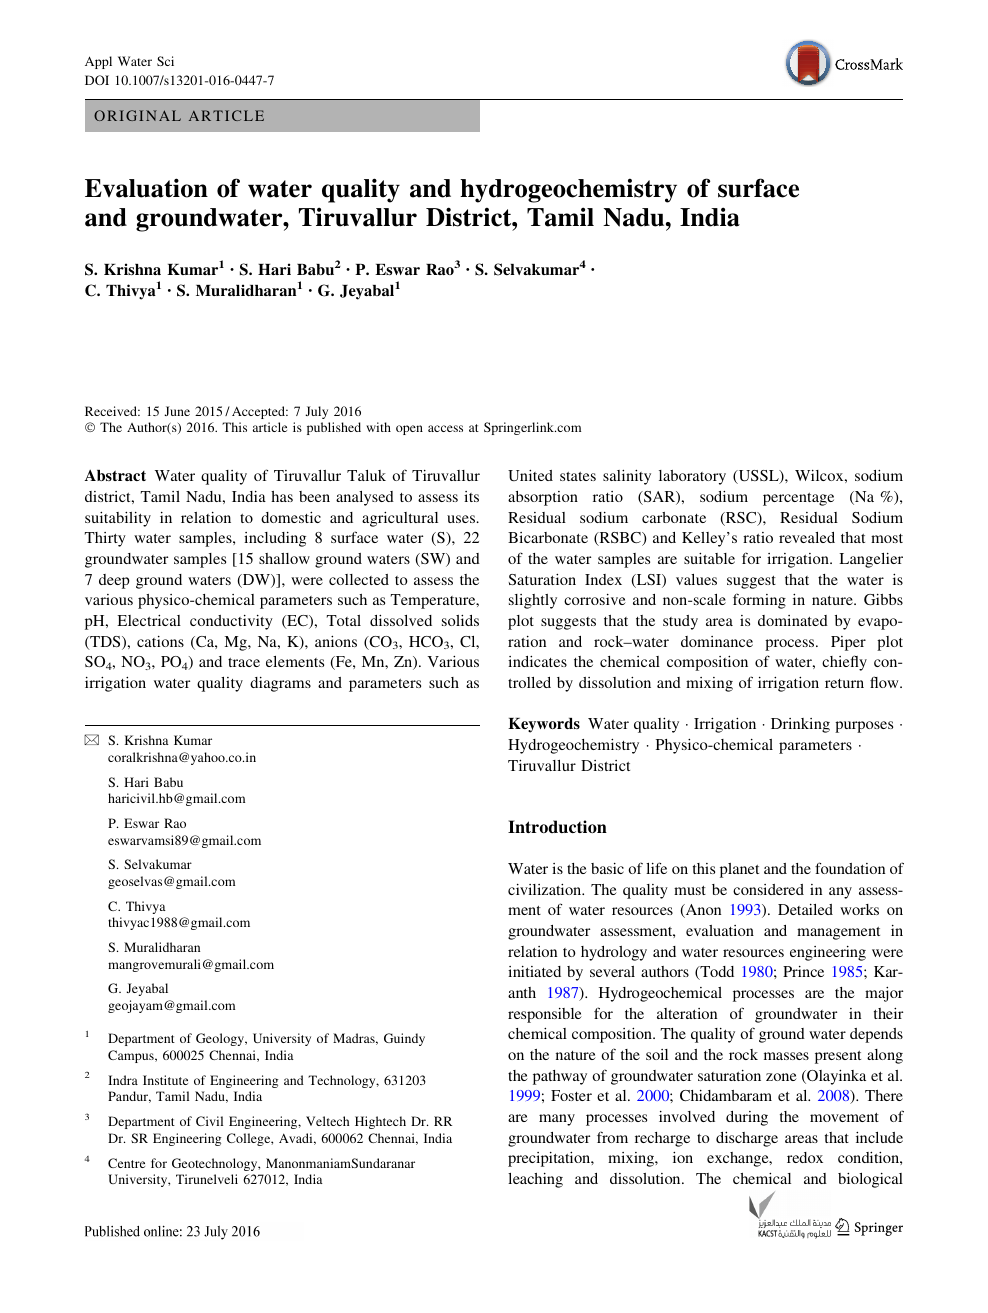 Evaluation of water quality and hydrogeochemistry of surface and